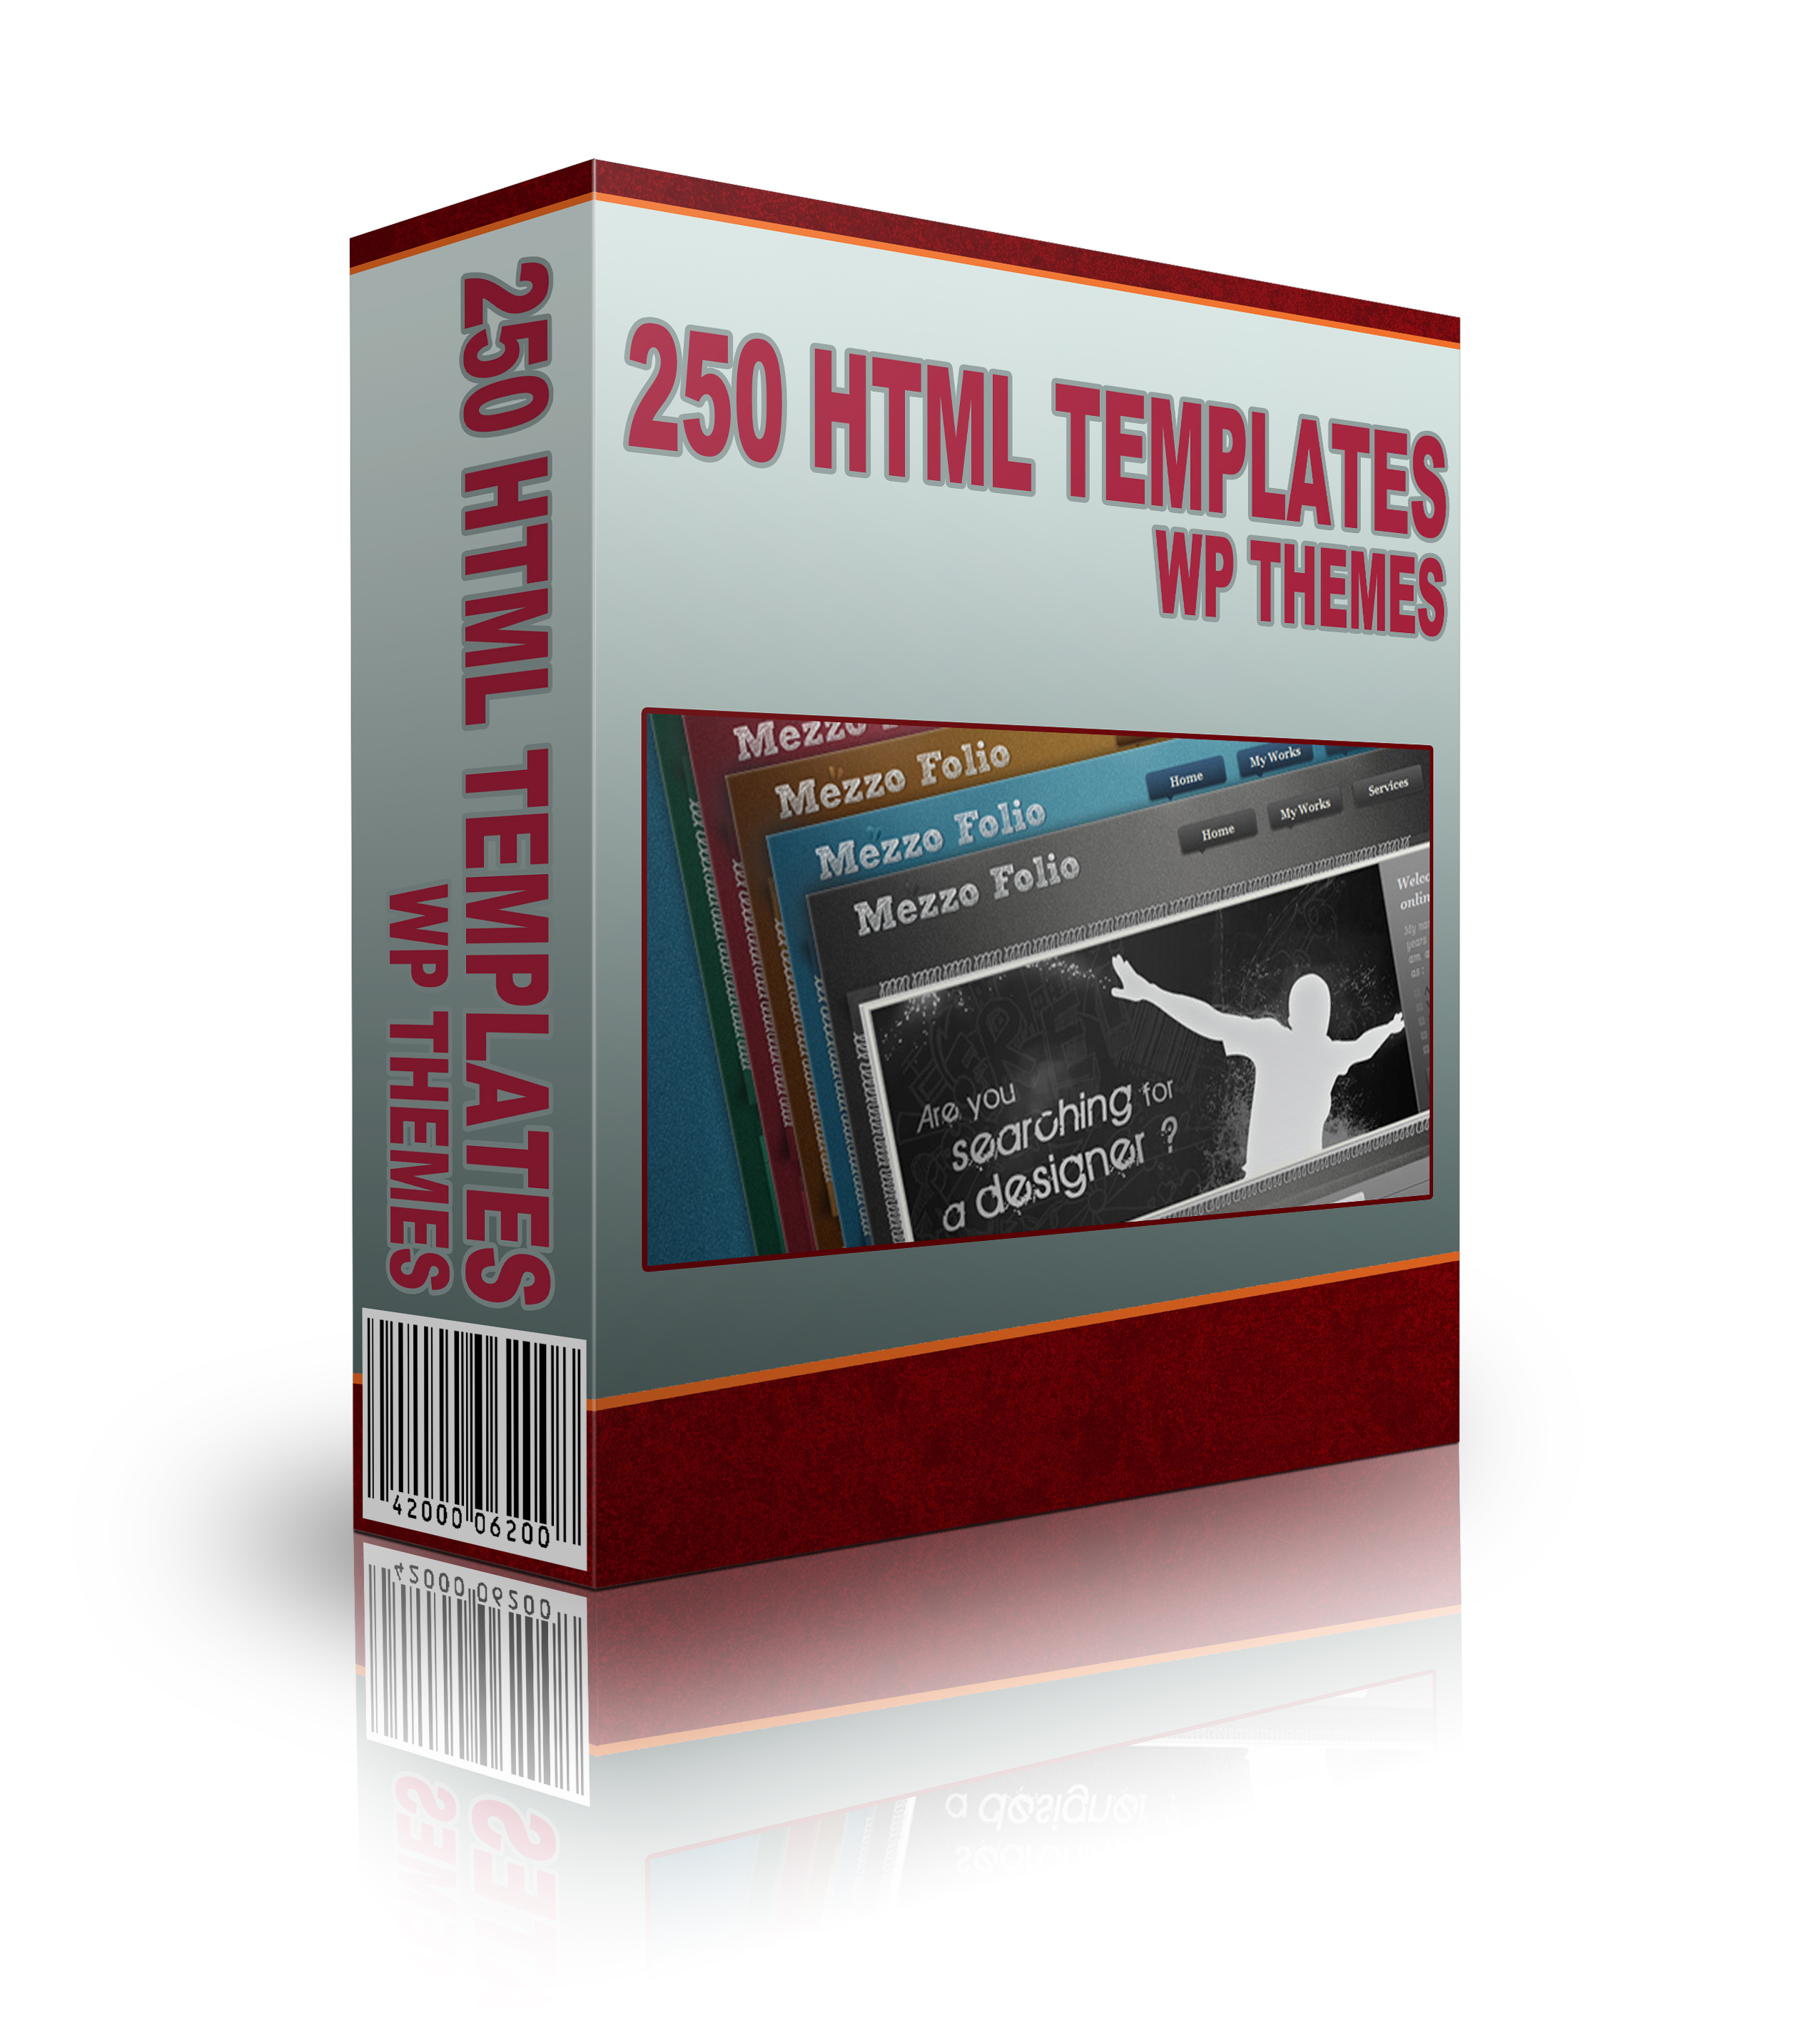 Get 250 HTML Templates WP Themes and Graphics